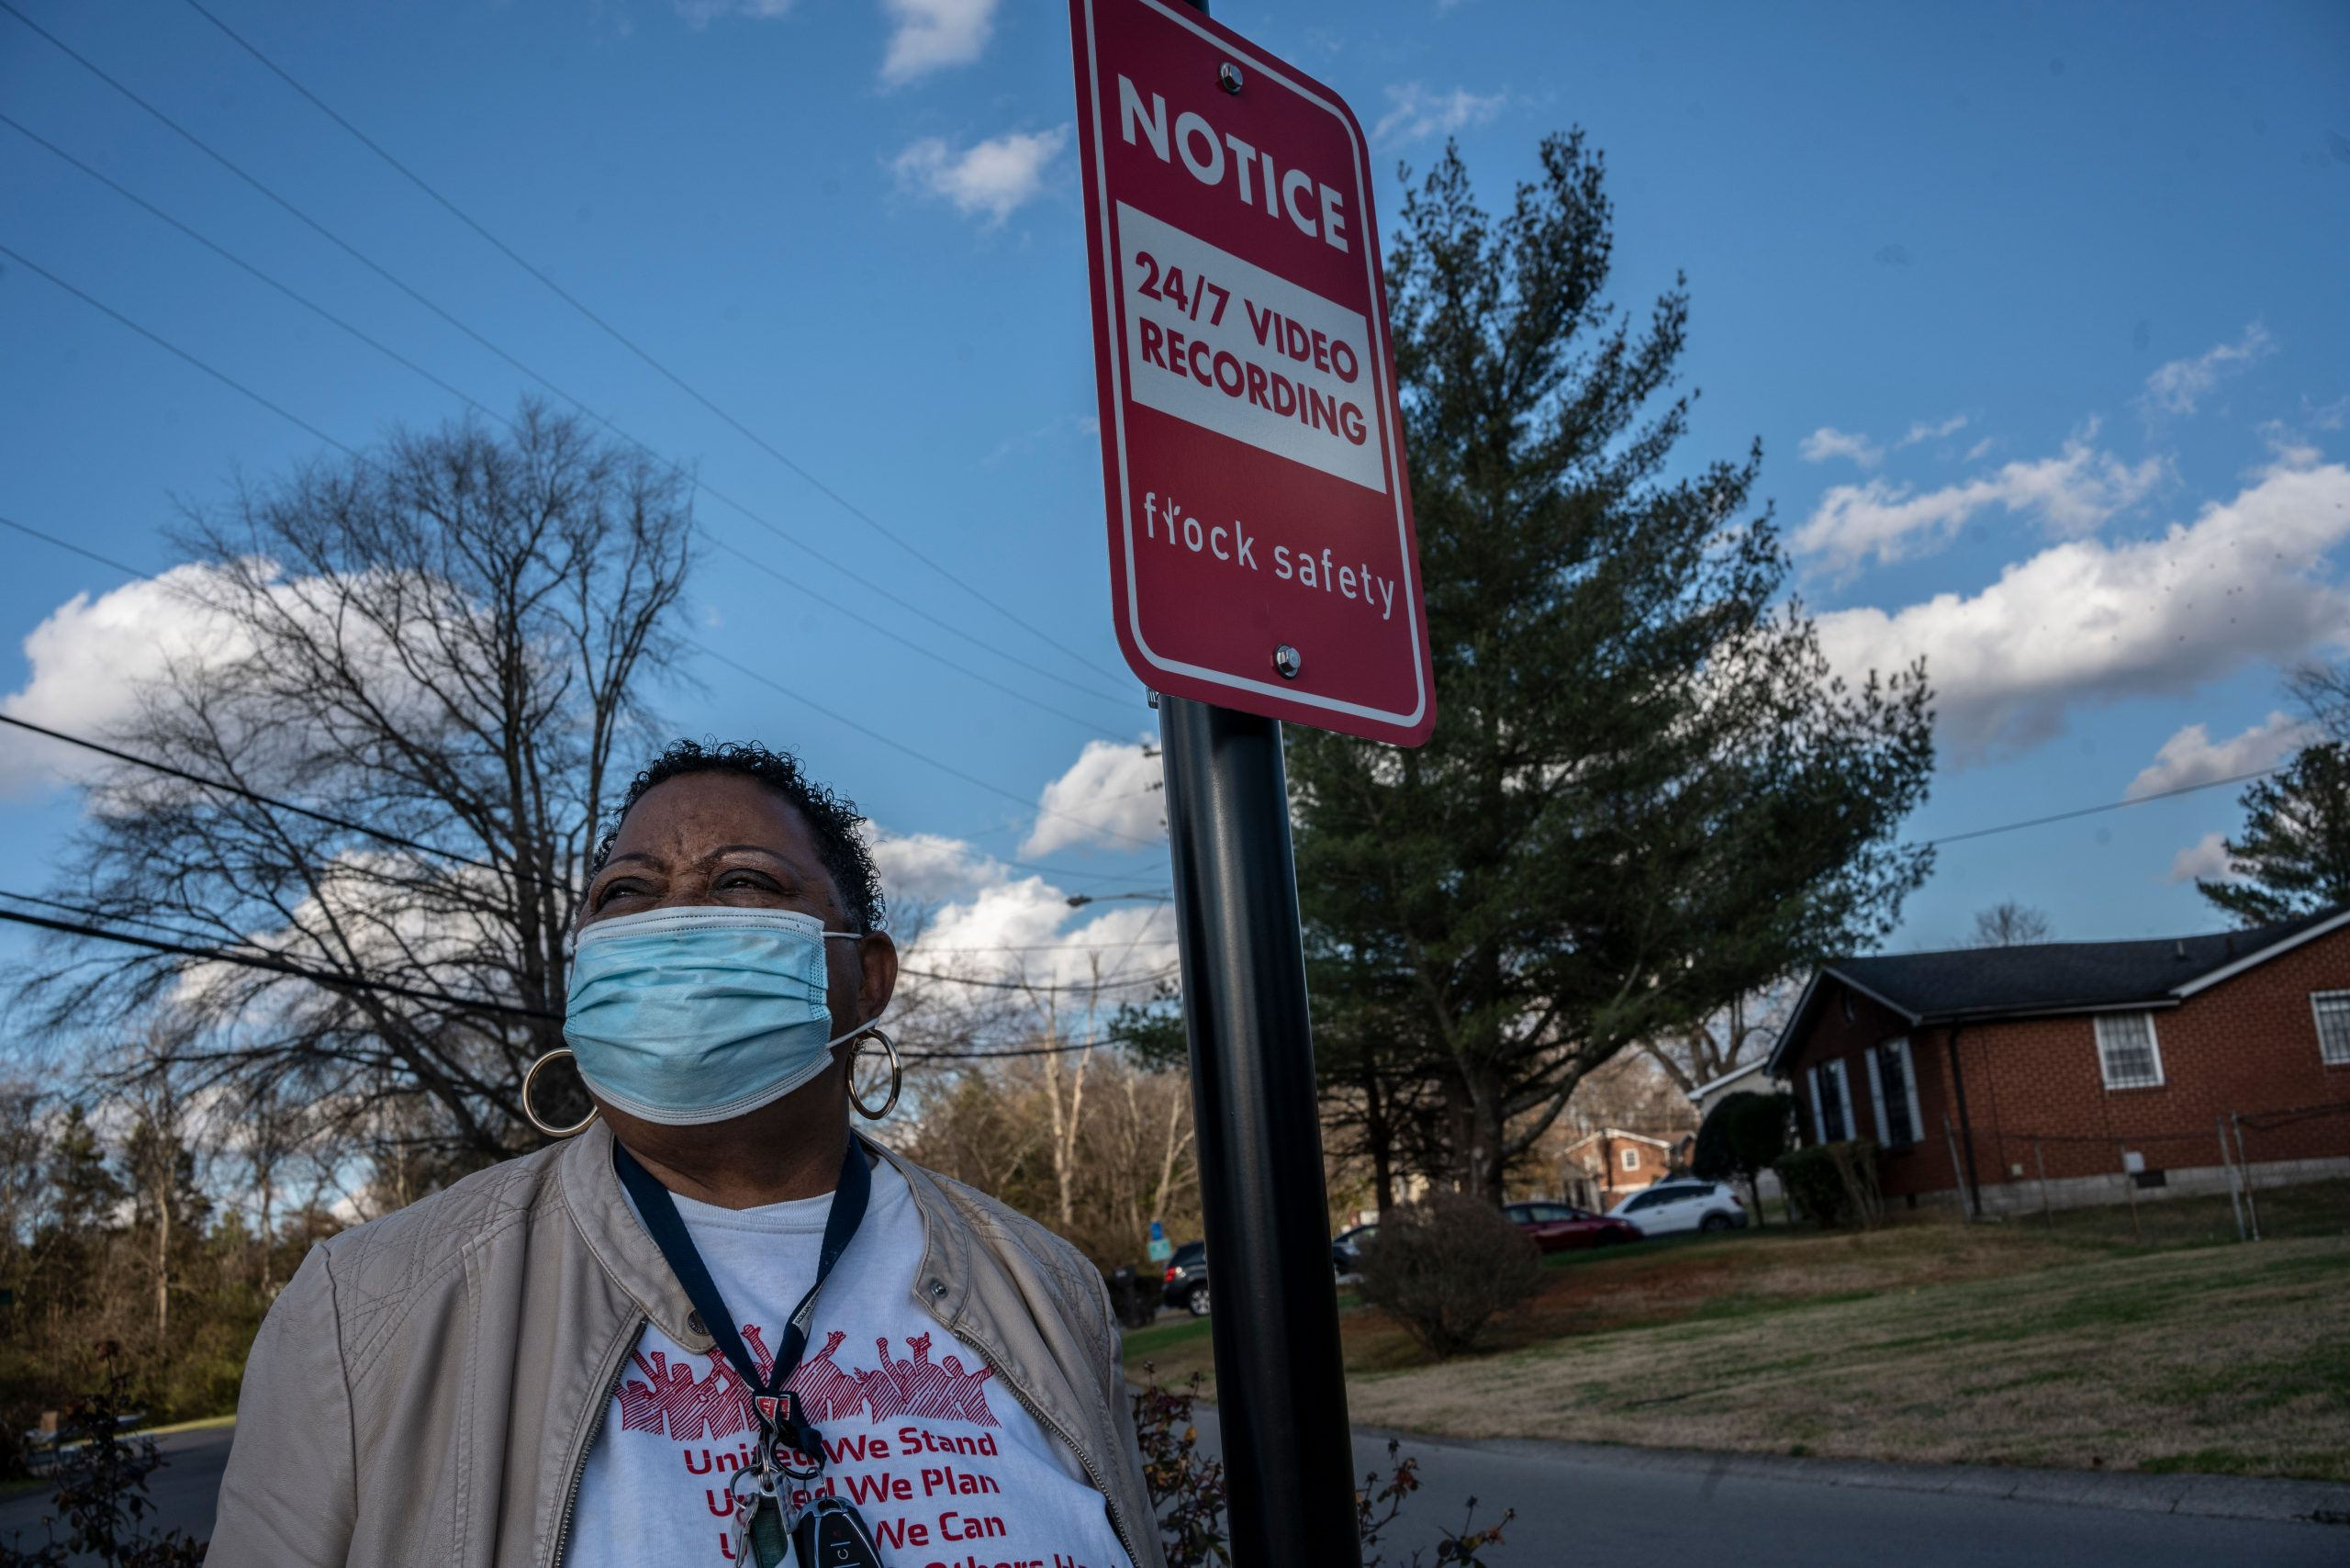 Gina Coleman has lived in Haynes Park for 39 years and she and neighbors raised $4,500 for 2 security cameras in the neighborhood. (Photo: John Partipilo)